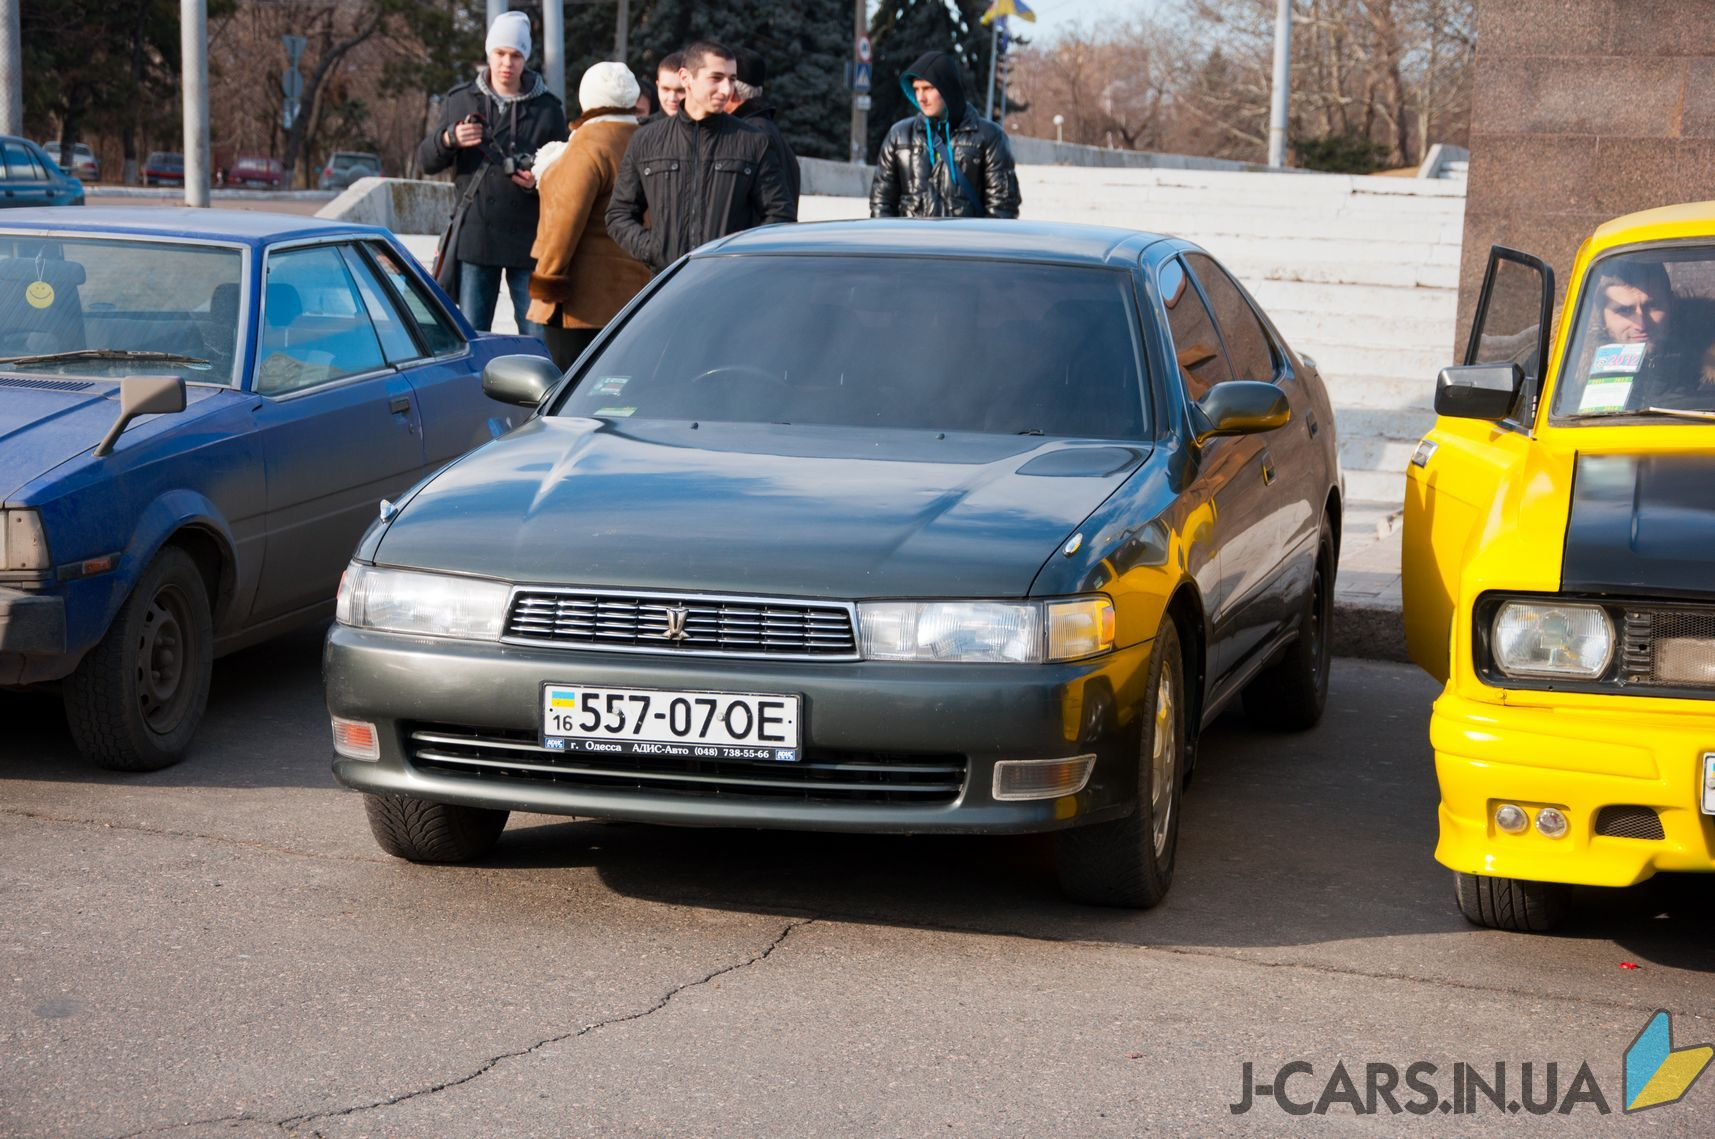 j-cars.in.ua carina ed